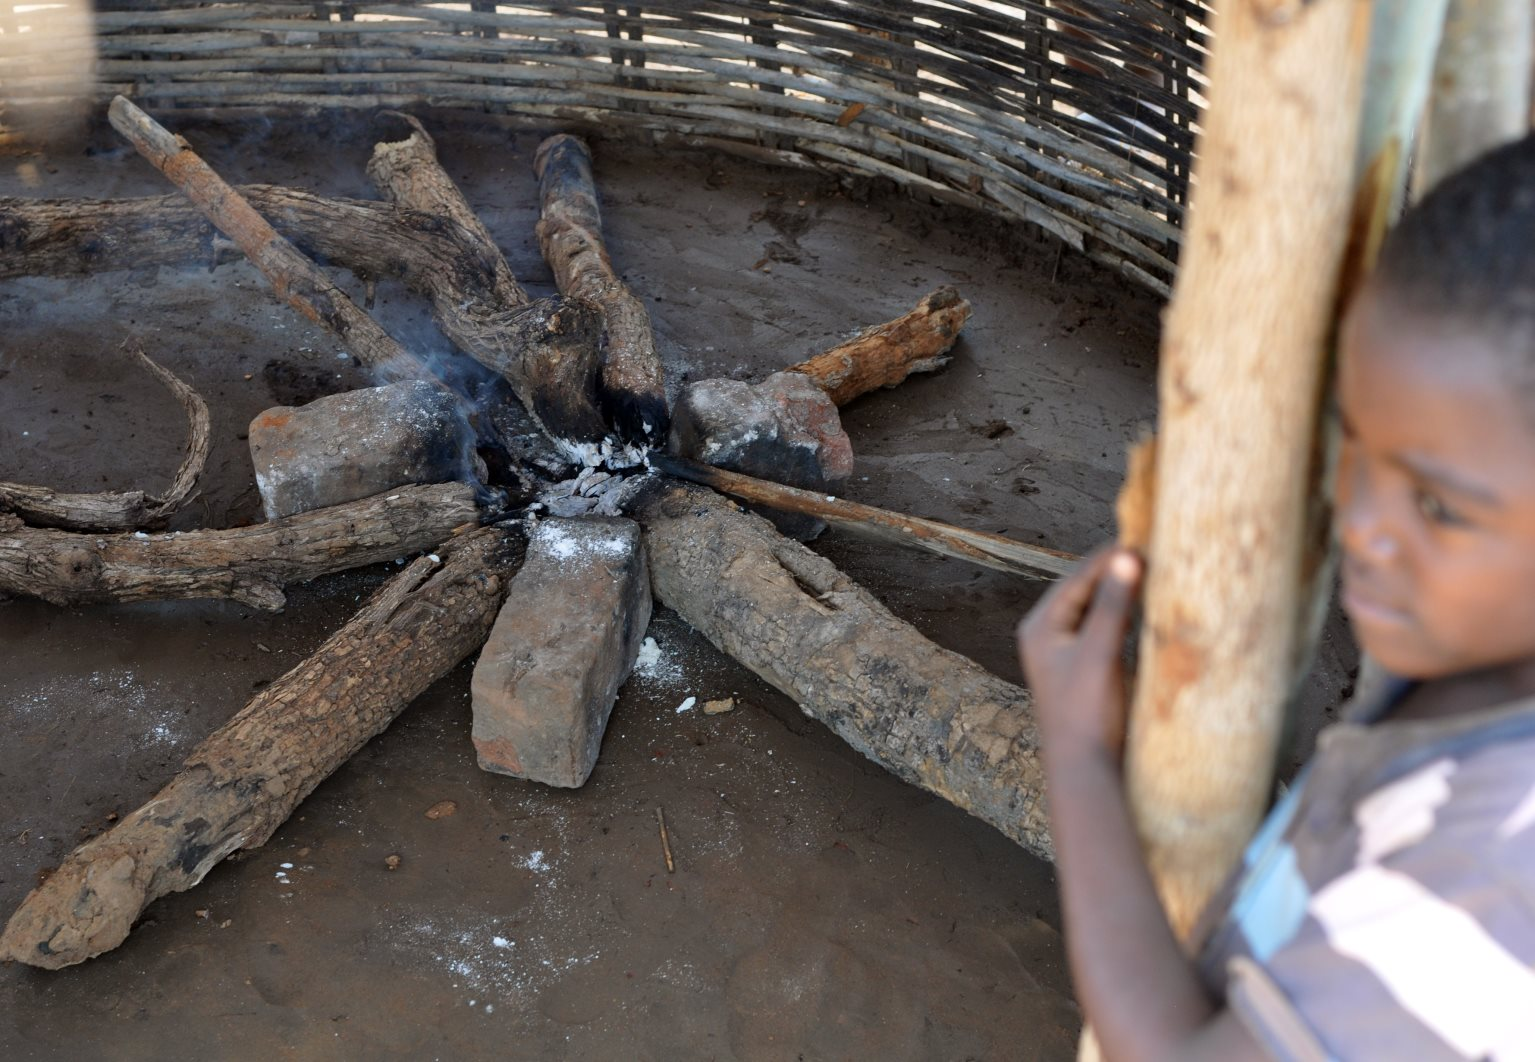 Open fires are very smoky. Health damaging exposures of PM2.5 are any that exceed 100 ug/m3. Average levels of PM2.5 in poorly ventilated kitchens in rural Zambia exceed 400 ug/m3 and may reach 1000 ug/m3.